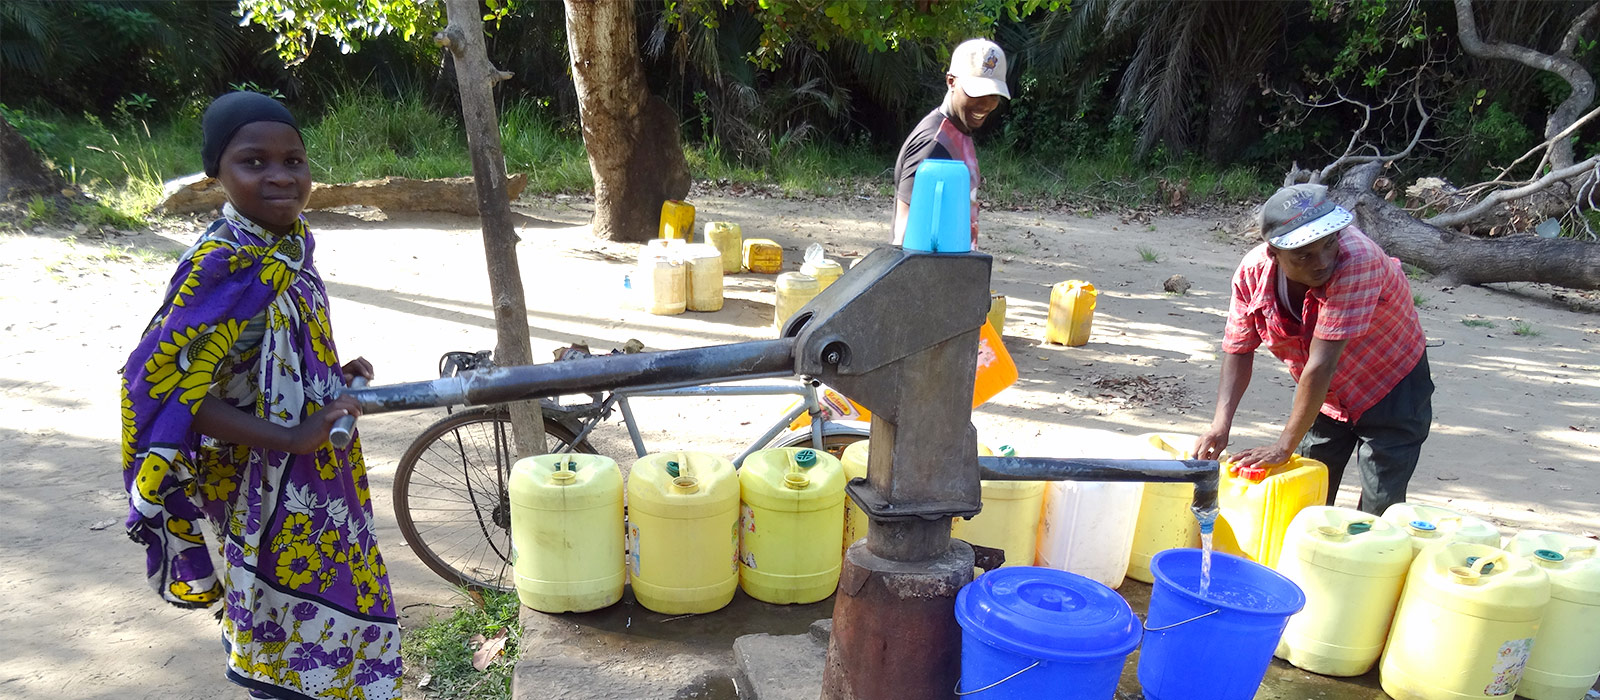 A smart handpump in use in Kenya. Photo by Tim Foster